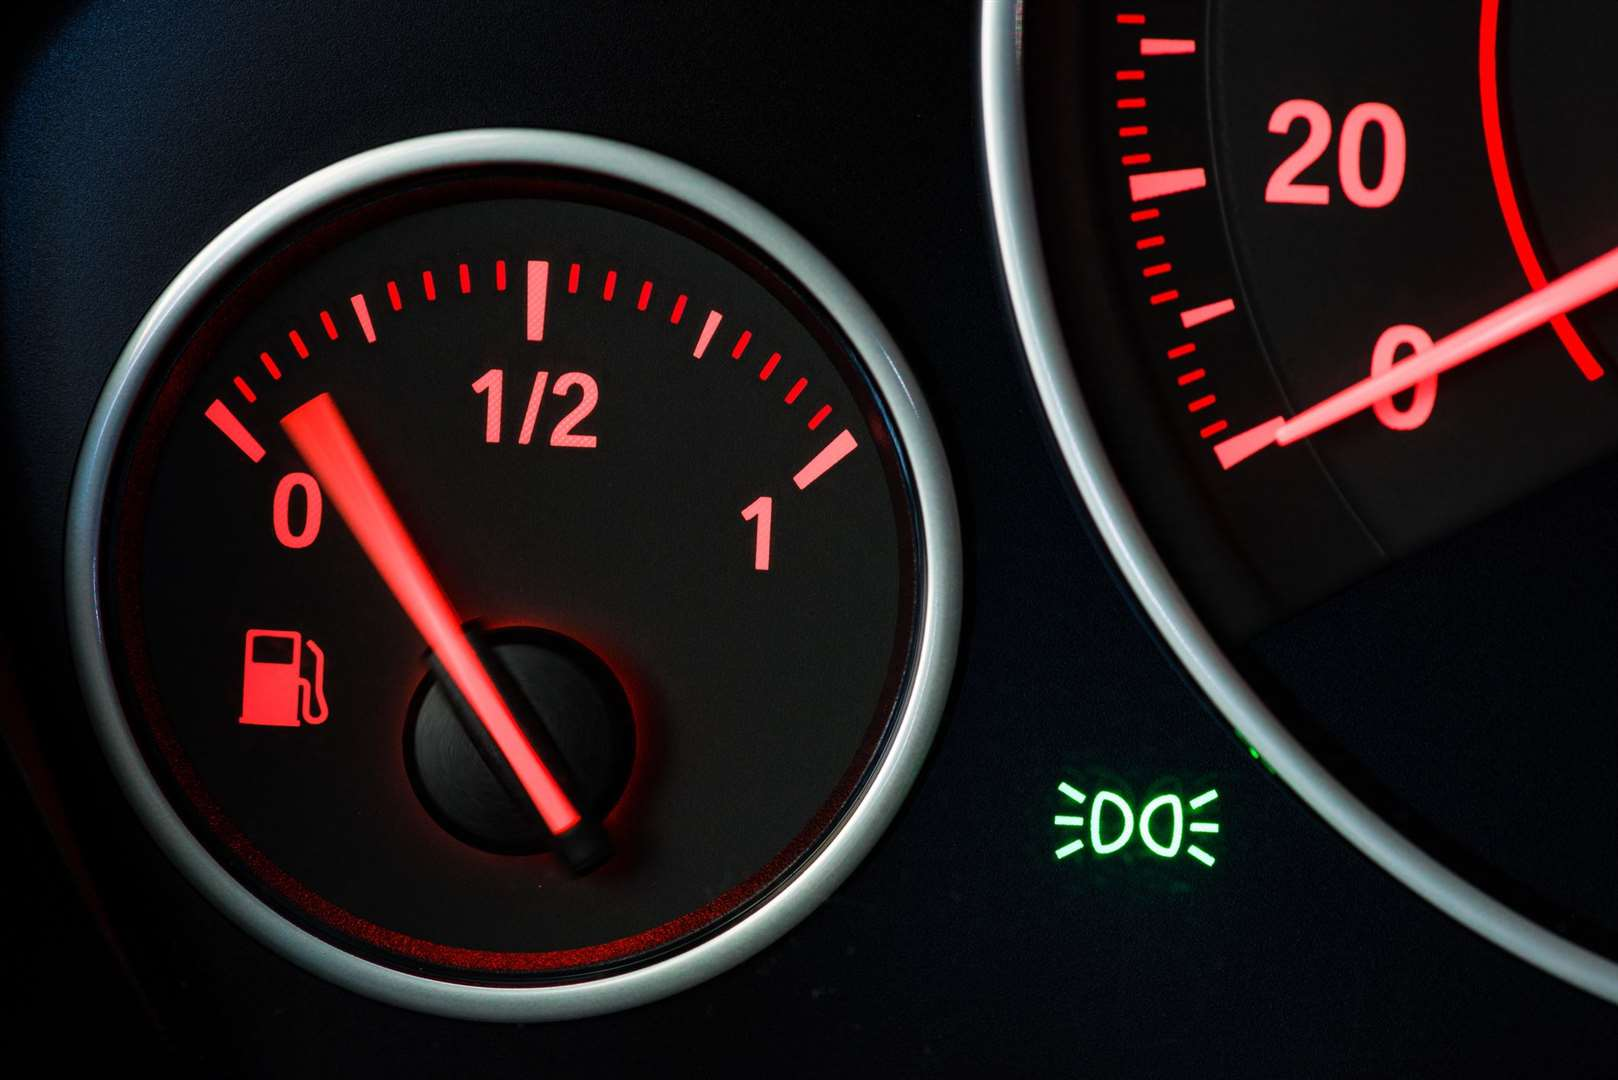 The AA says it believes, in the rush to buy petrol or diesel, people are making mistakes